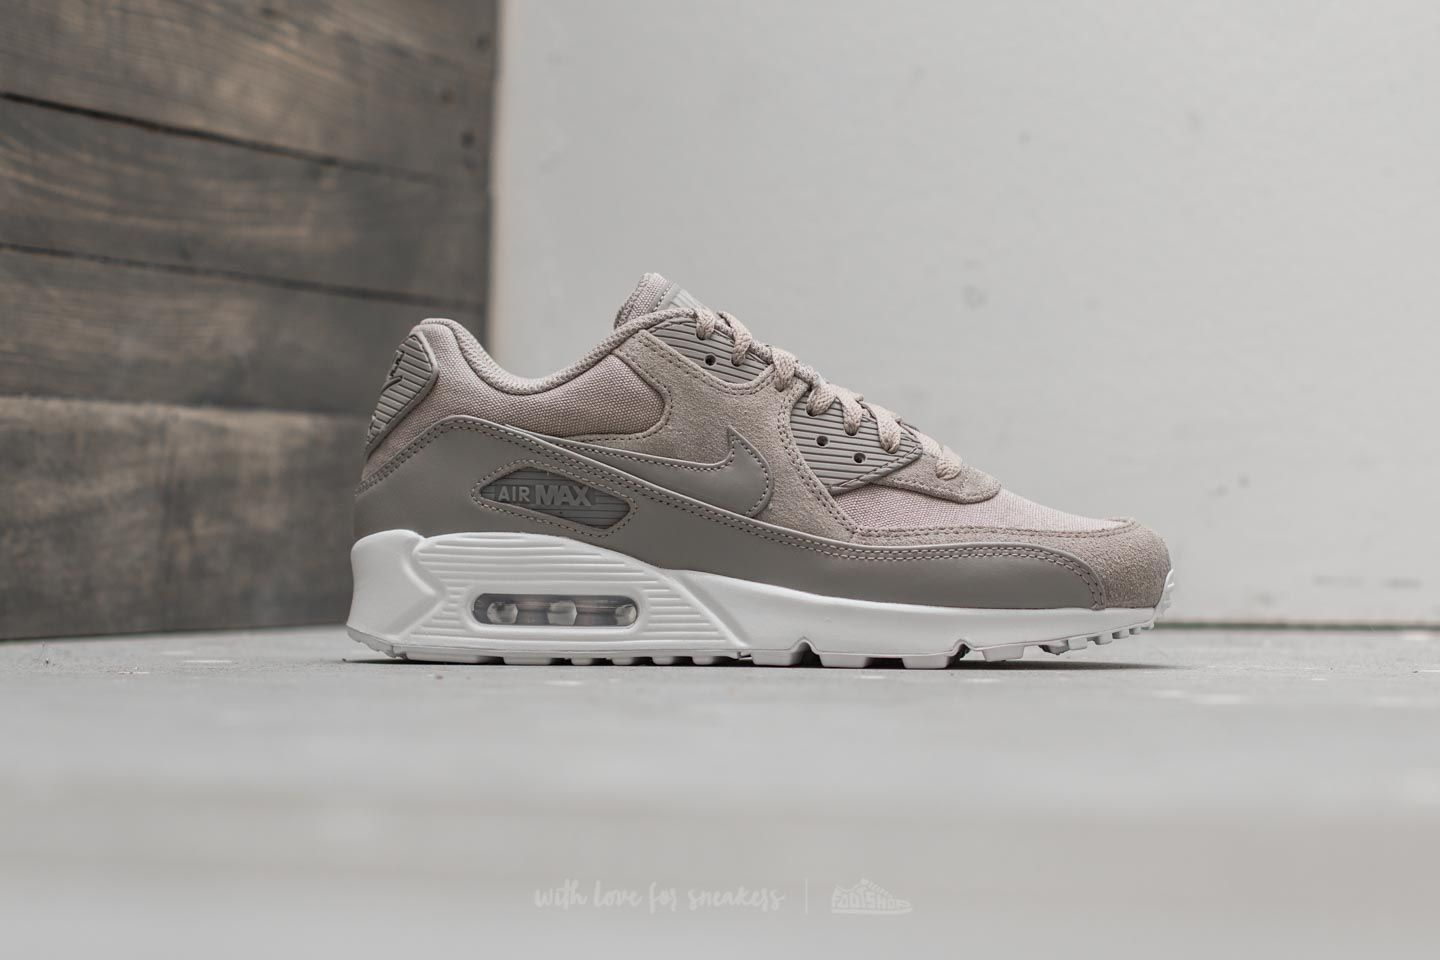 nike-air-max-90-premium nike air max 90 premium cobblestone/ cobblestone-white at a great price 143 XHEPQBQ